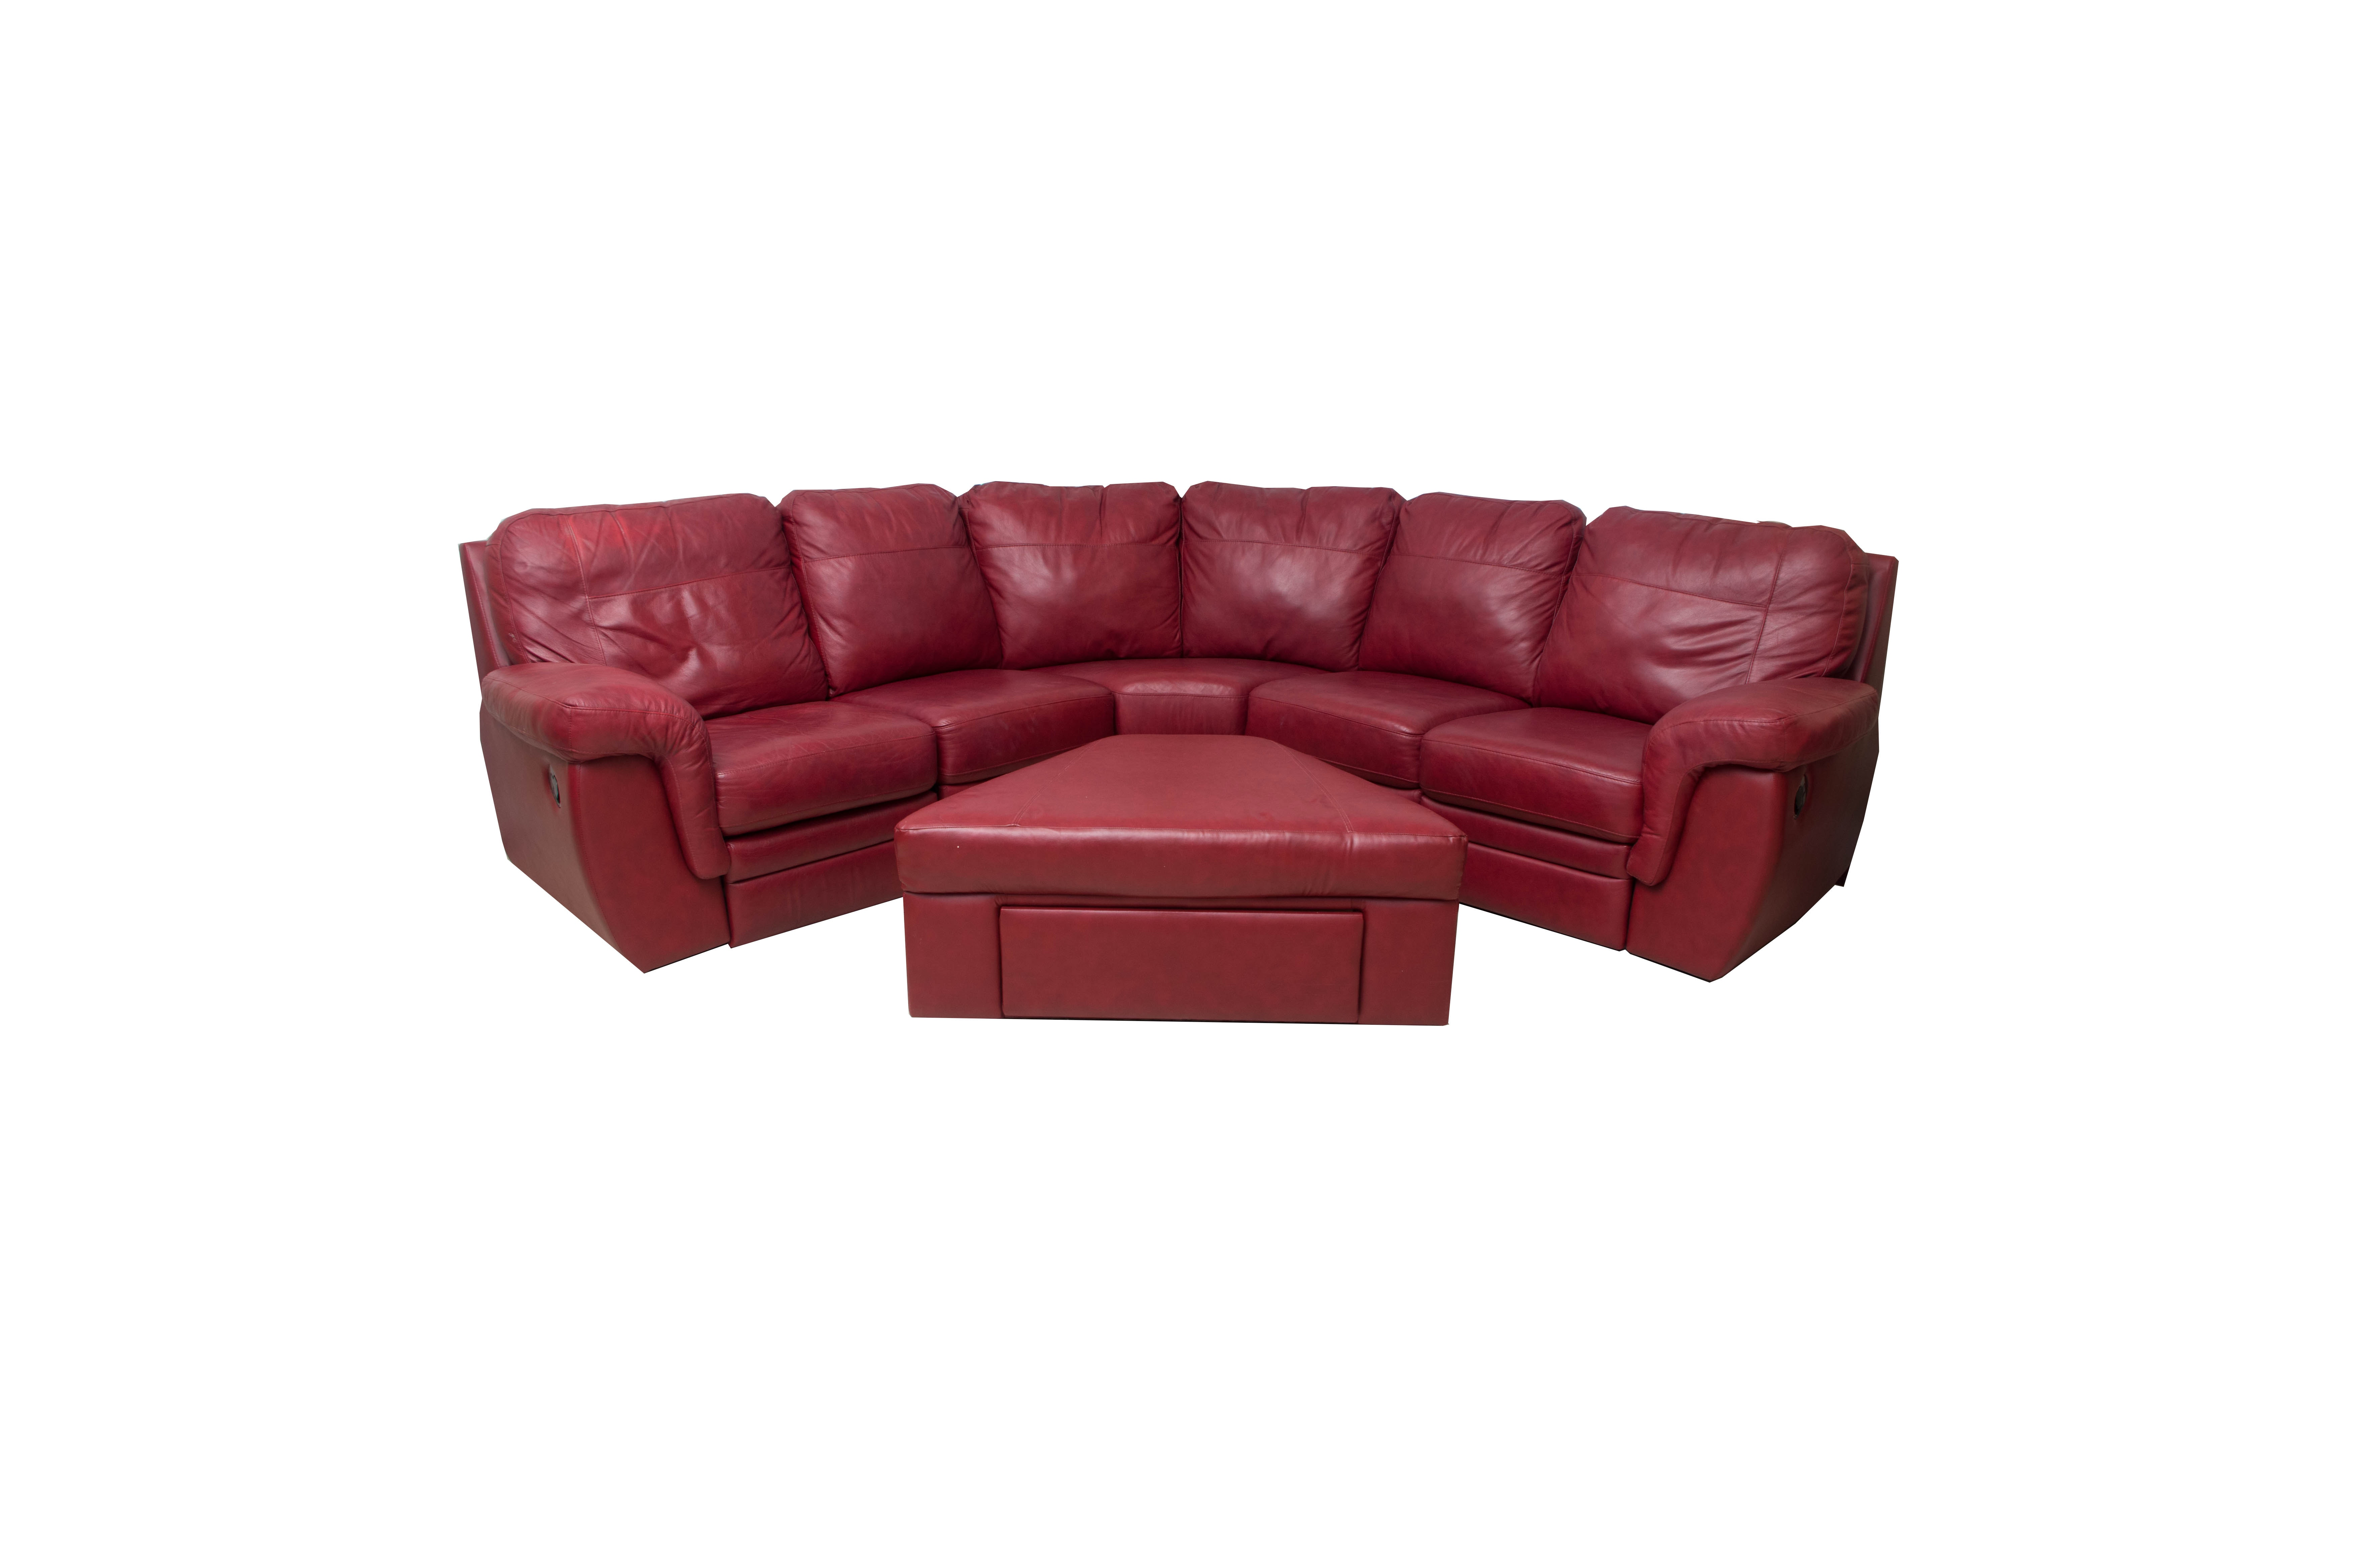 Red Bonded Leather Sectional Sofa With Ottoman